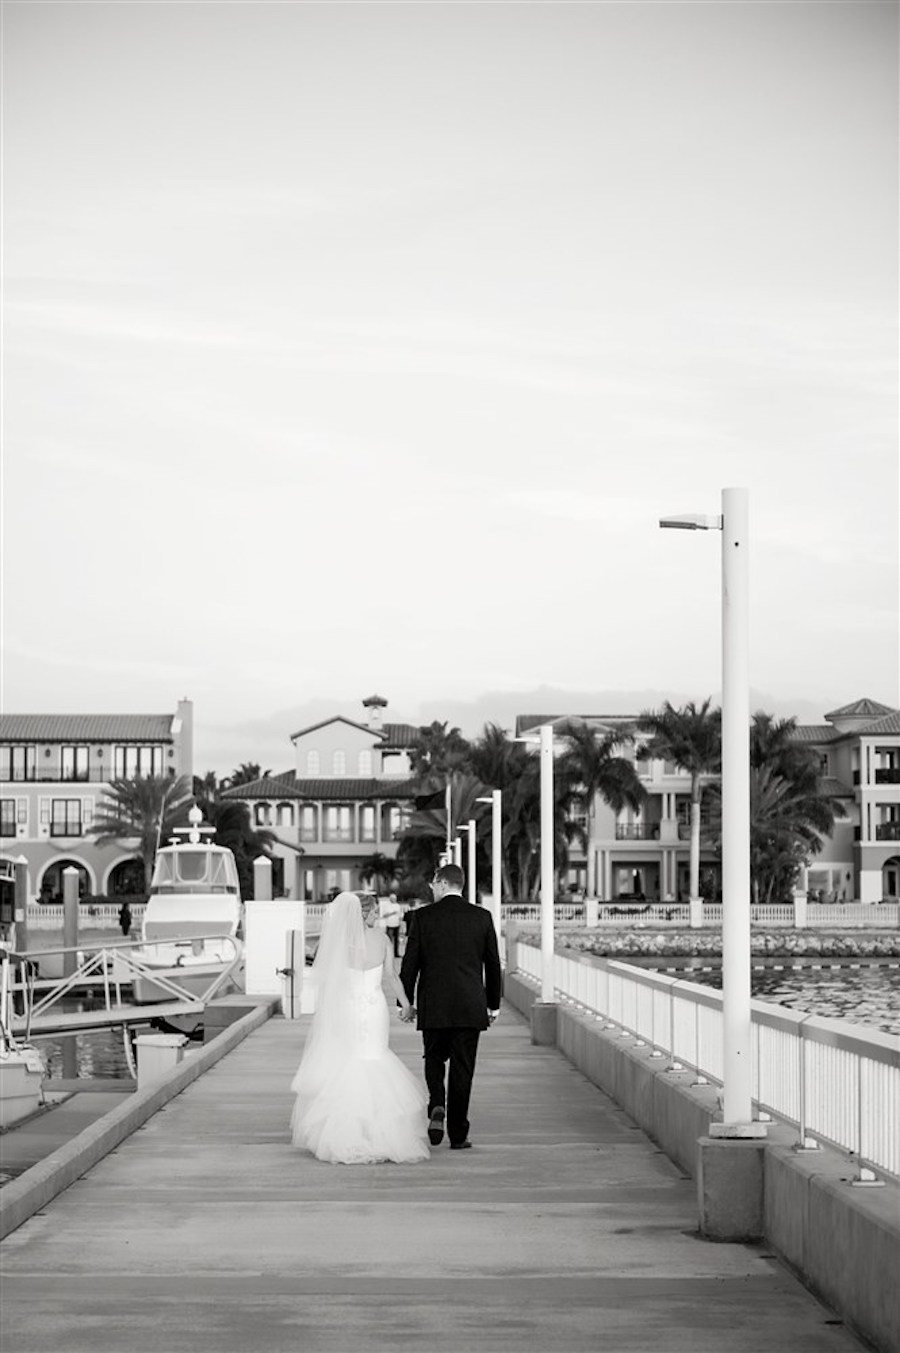 Outdoor Waterfront Wedding Ceremony with White Mermaid Dress at Tampa Bay Wedding Venue Westshore Yacht Club   Photographer Andi Diamond Photography